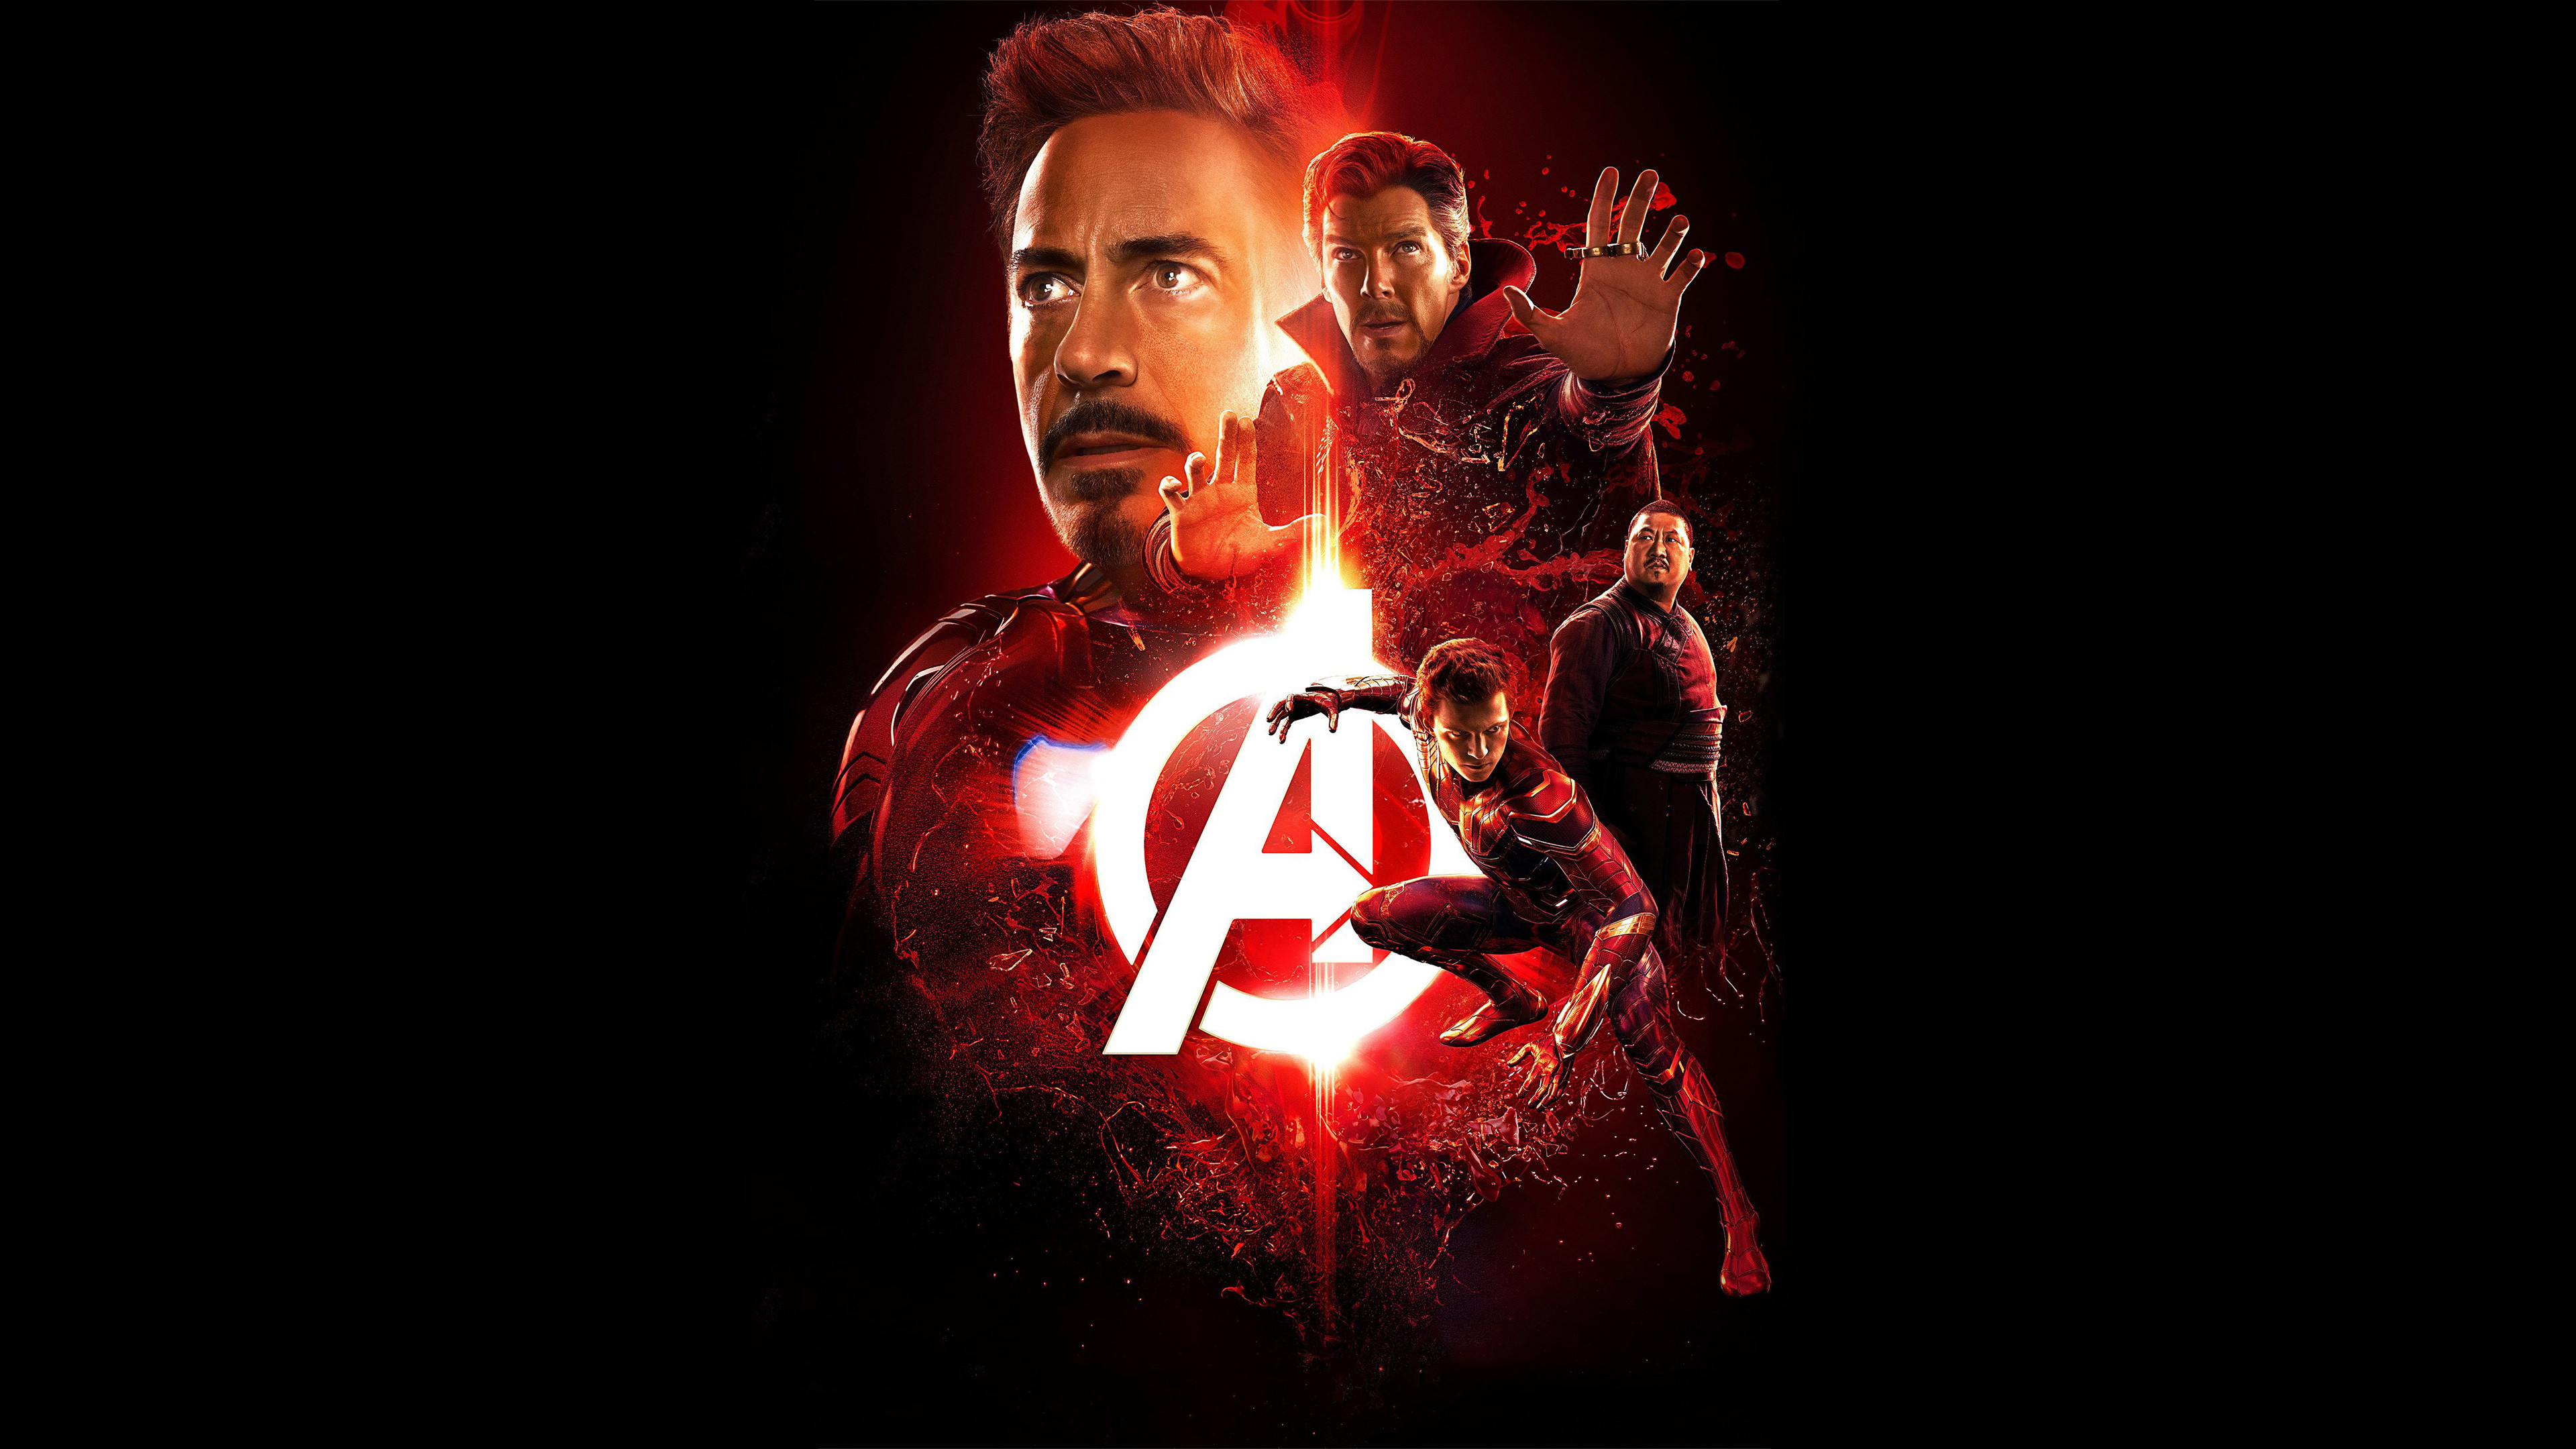 Res: 3840x2160, Avengers Infinity War 2018 Reality Stone Poster 4k